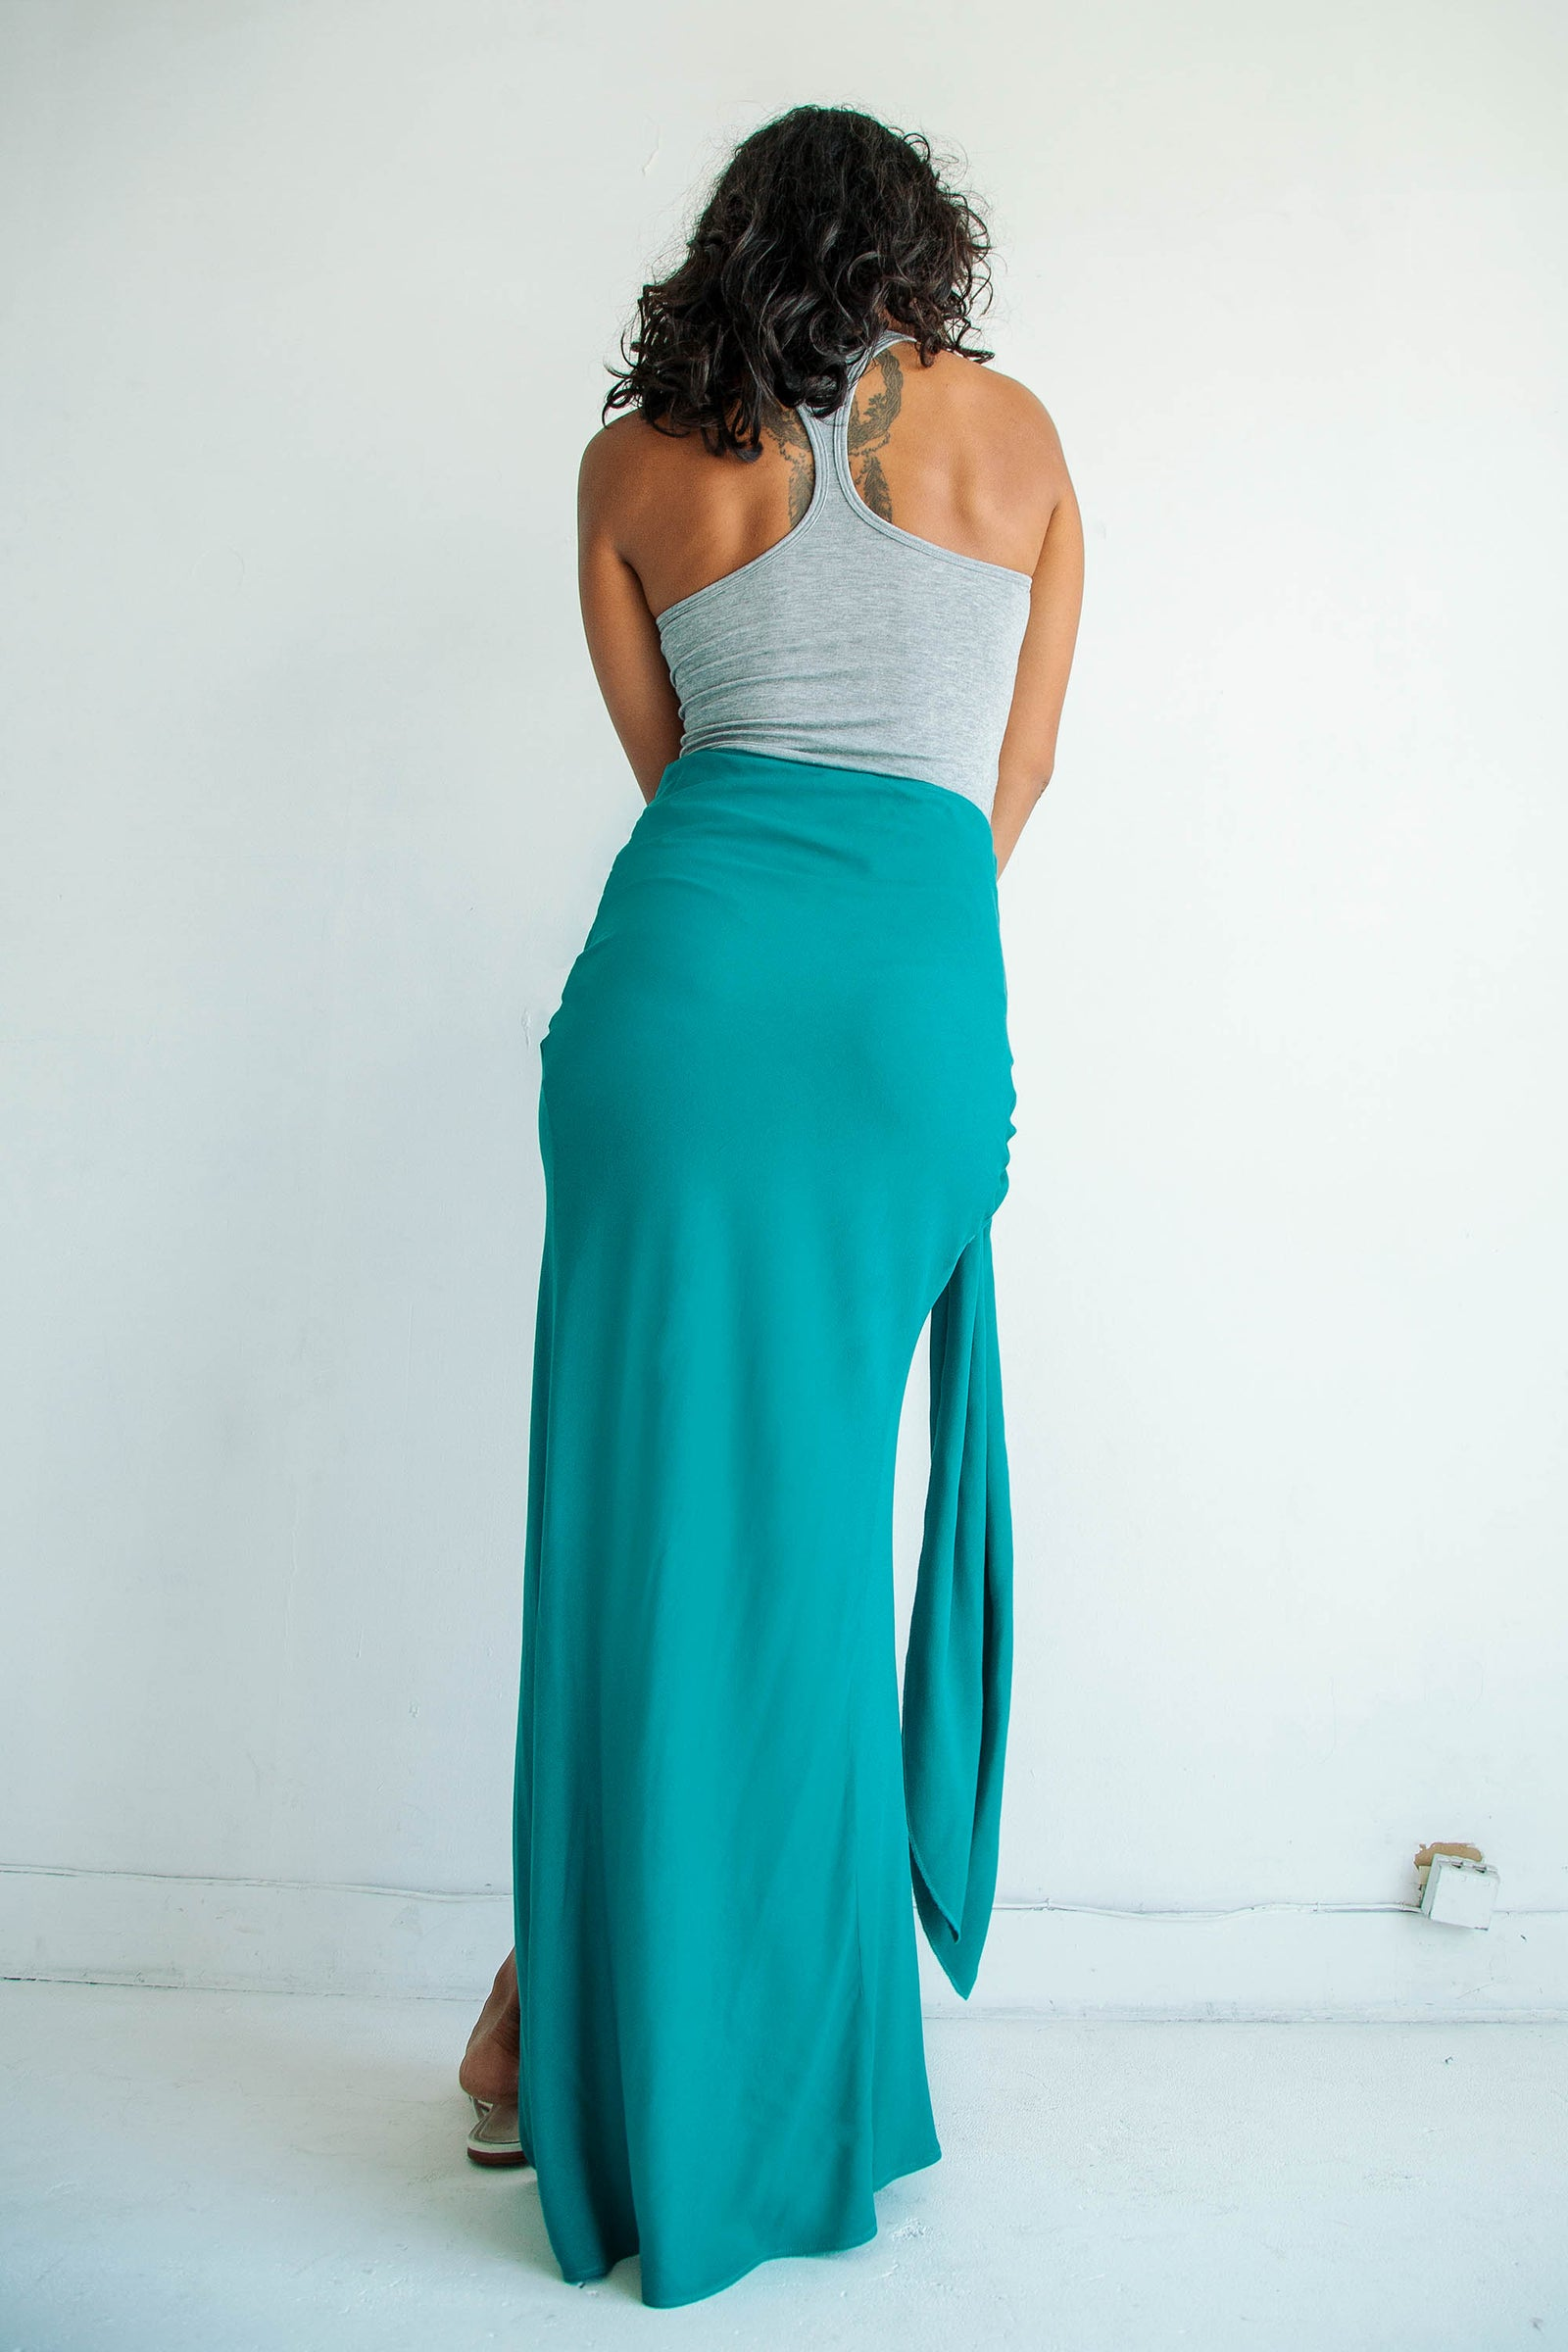 Celia Skirt Marine Green